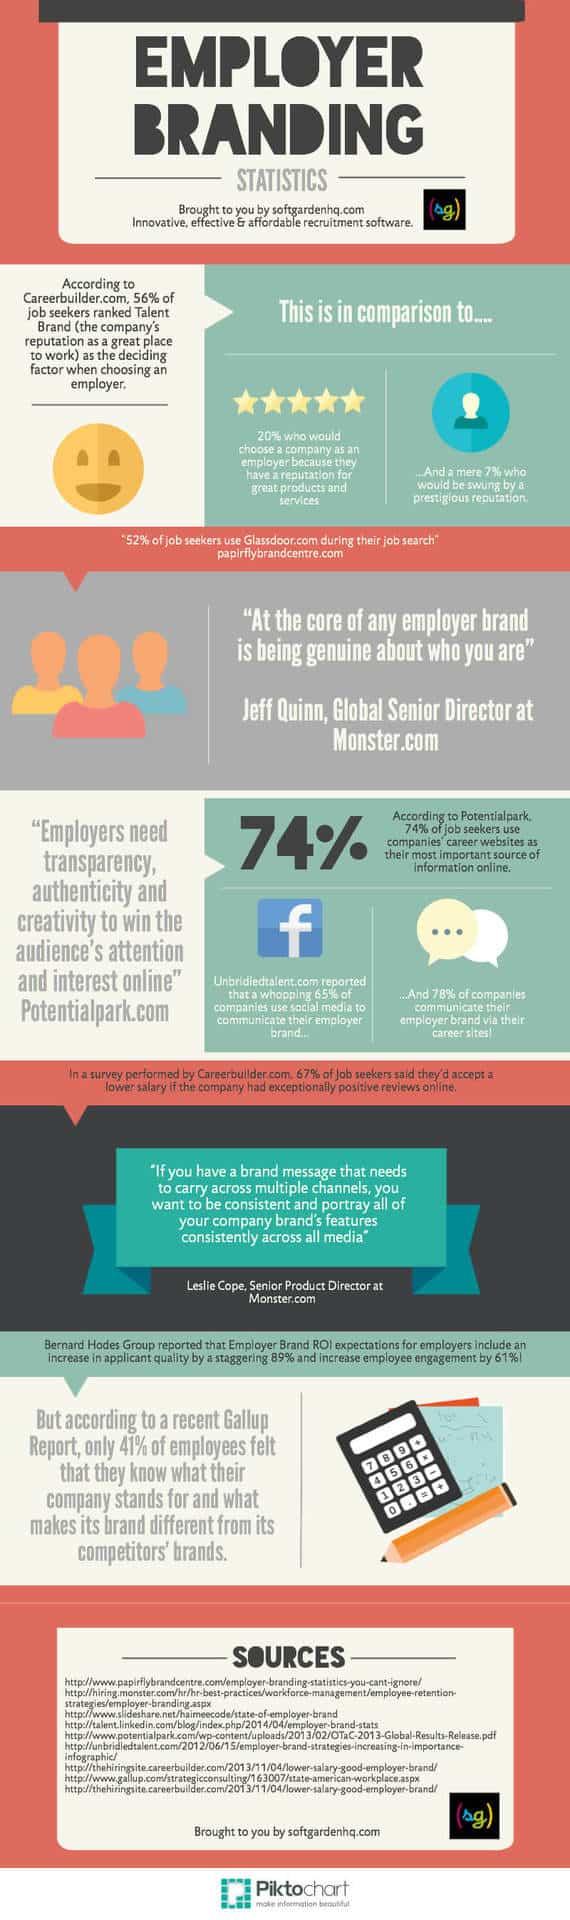 Employer Branding Statistics That You Need to Know